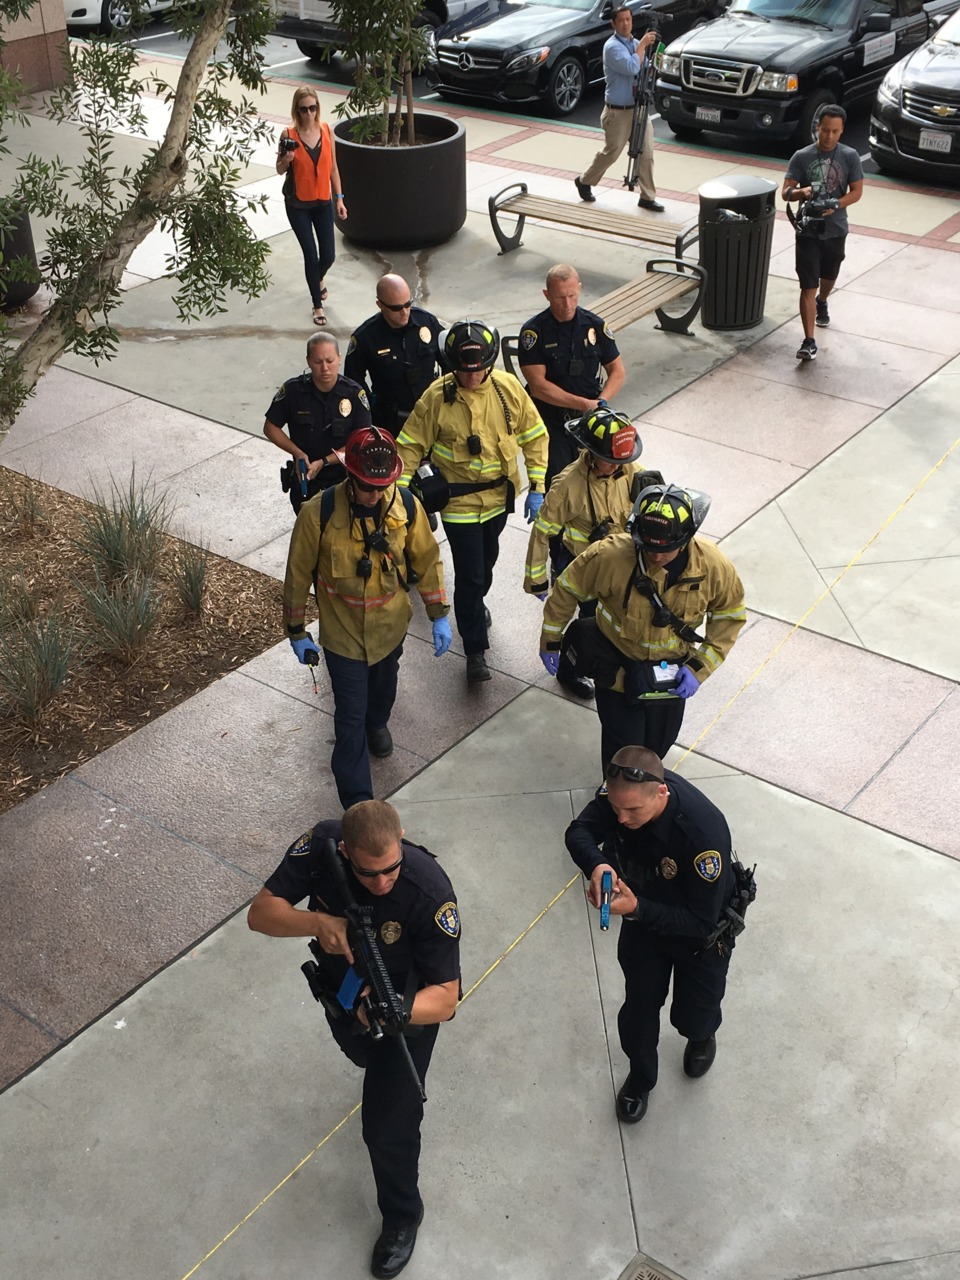 Fire Department Response For Active Shooter Mass